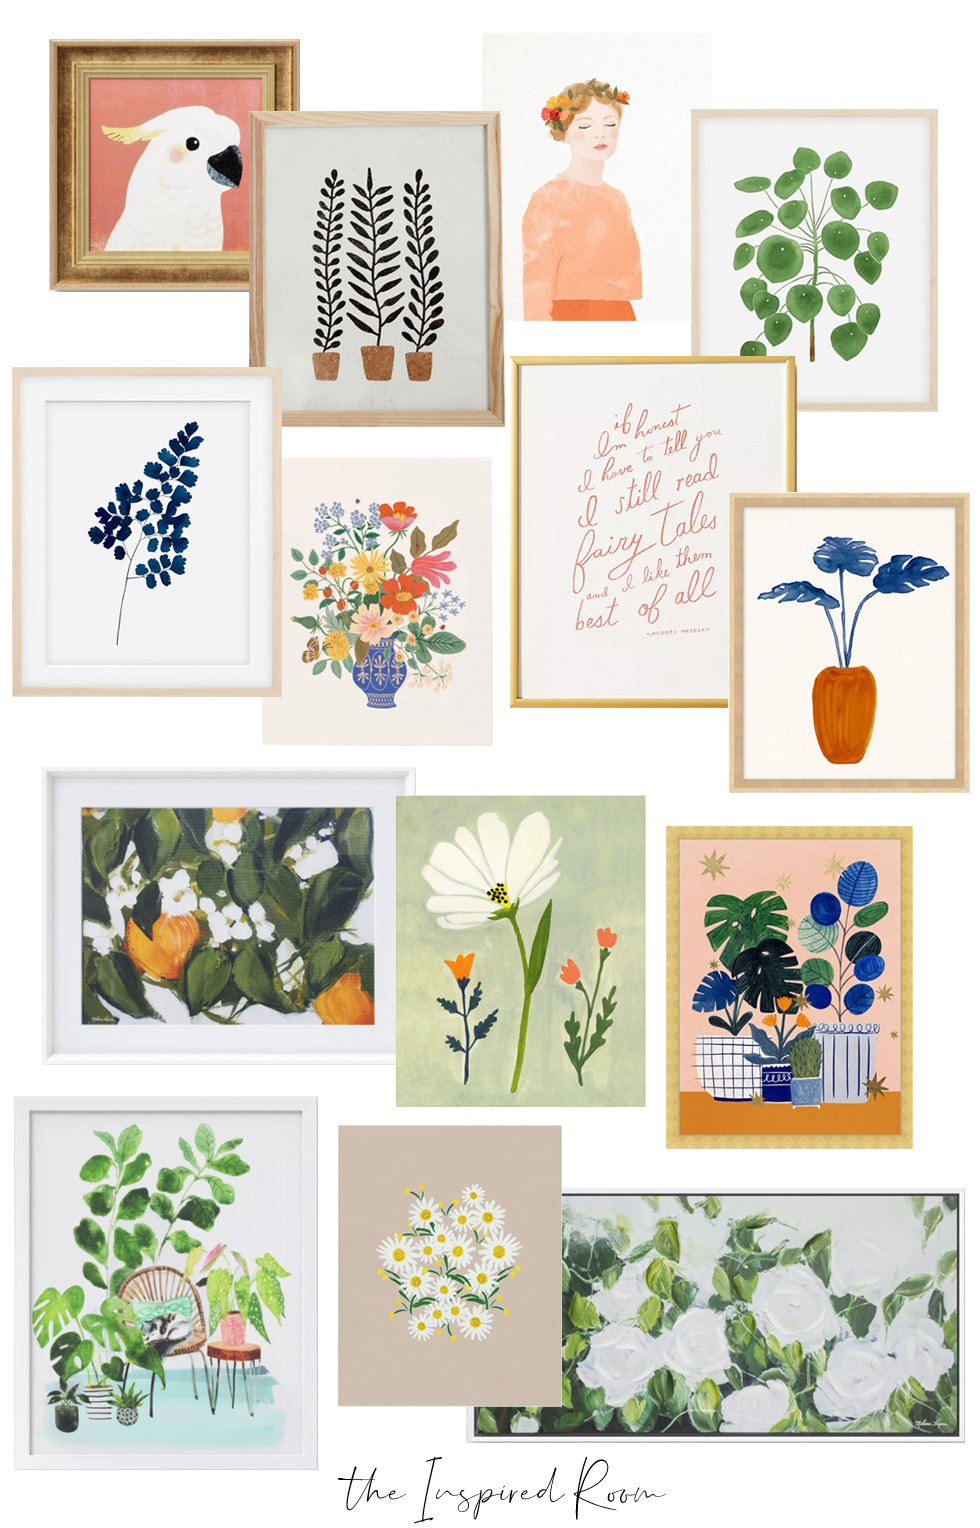 Pretty Artwork for Spring – The Inspired Room